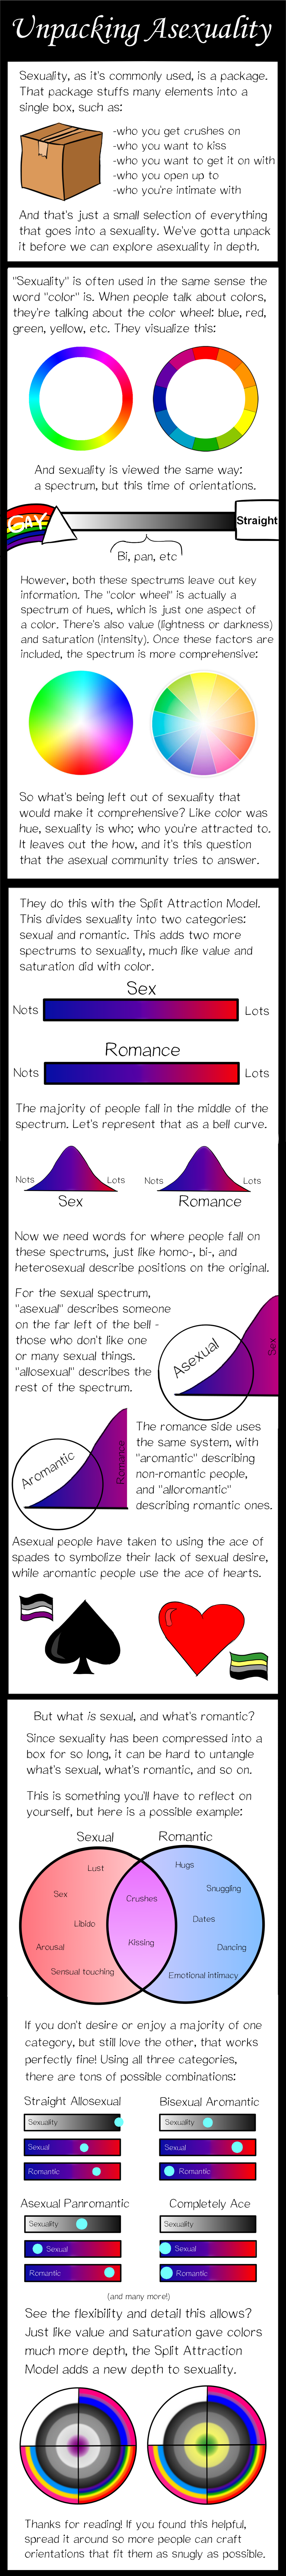 Copy of Unpacking Asexuality